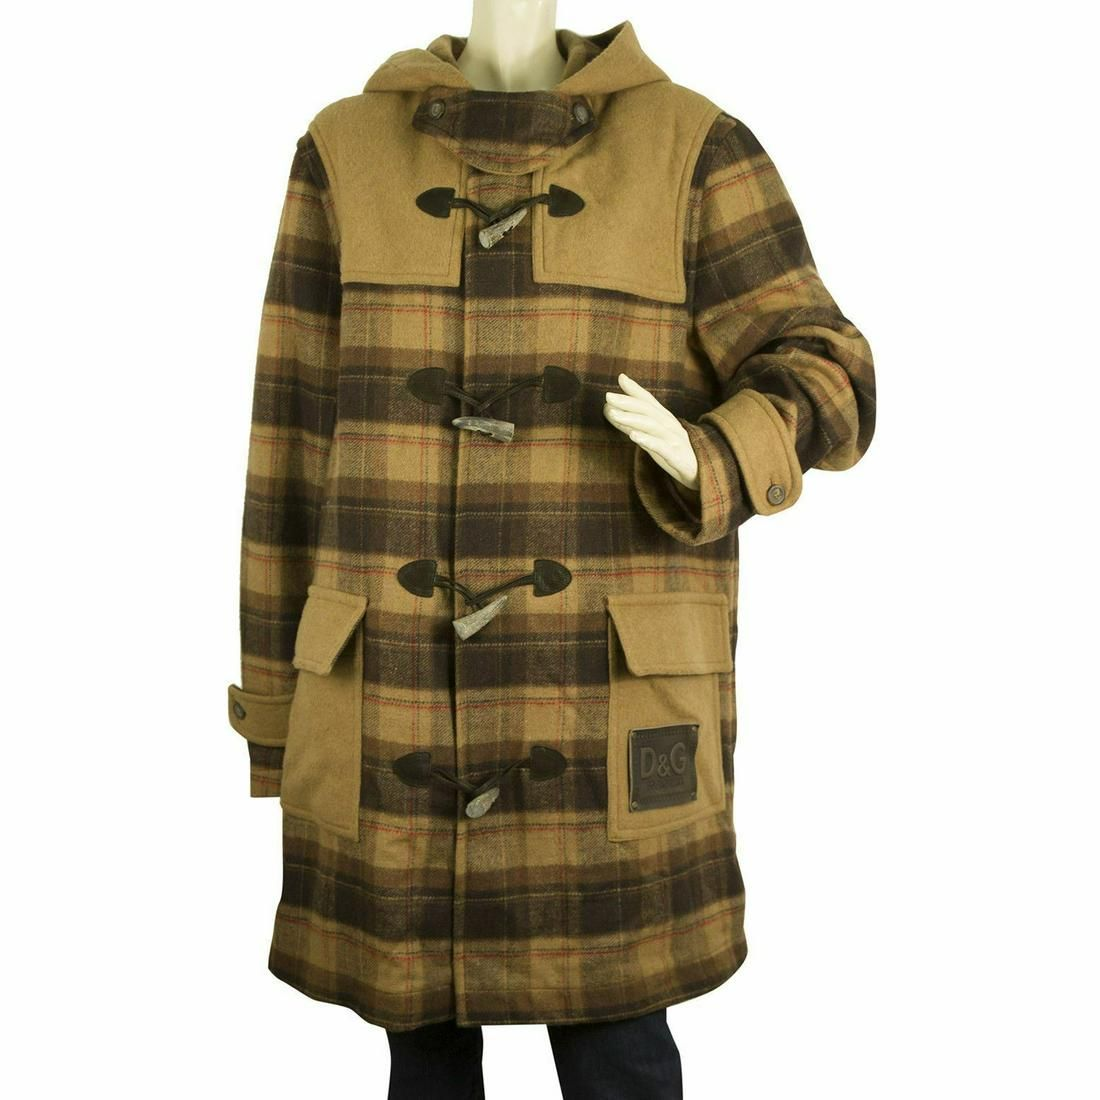 Dolce & Gabbana D&G Brown Beige Hooded Checked Wool